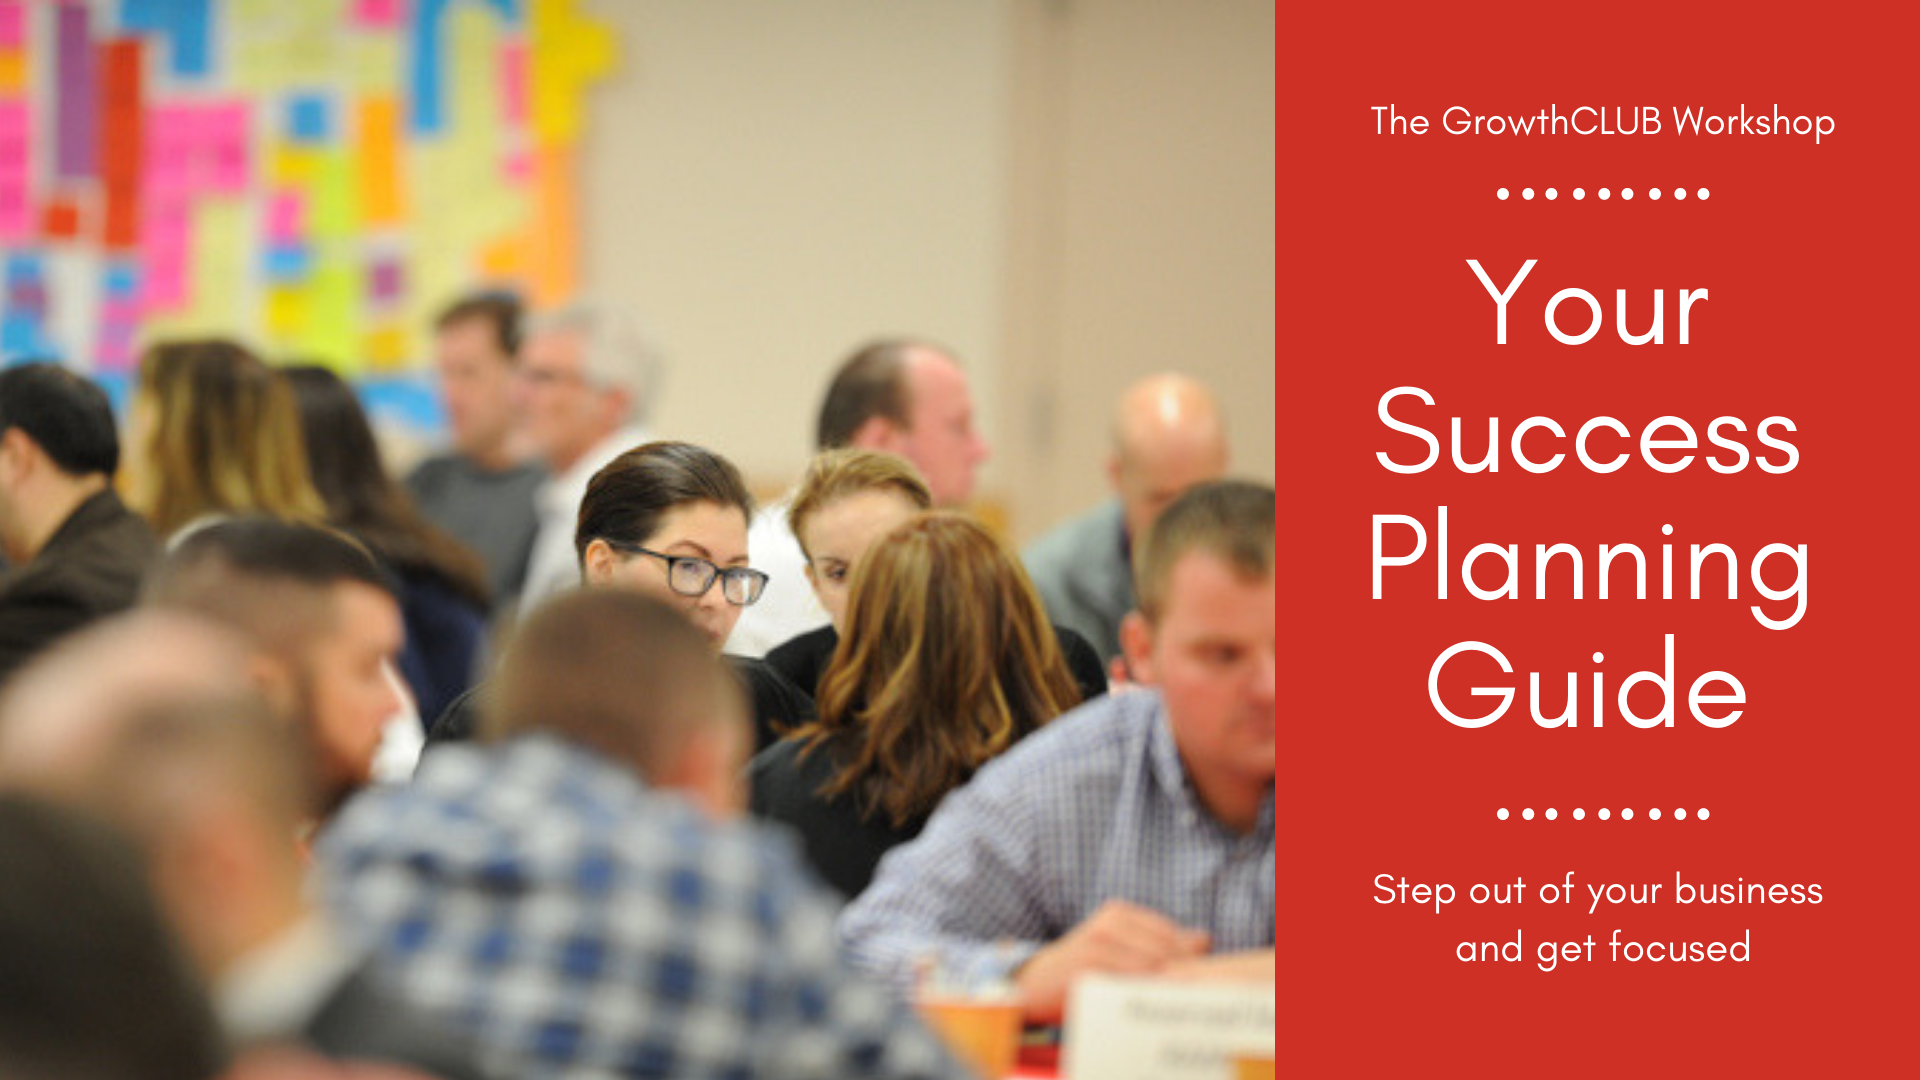 GrowthCLUB Quarterly Planning Workshop for Business Owners and Leaders